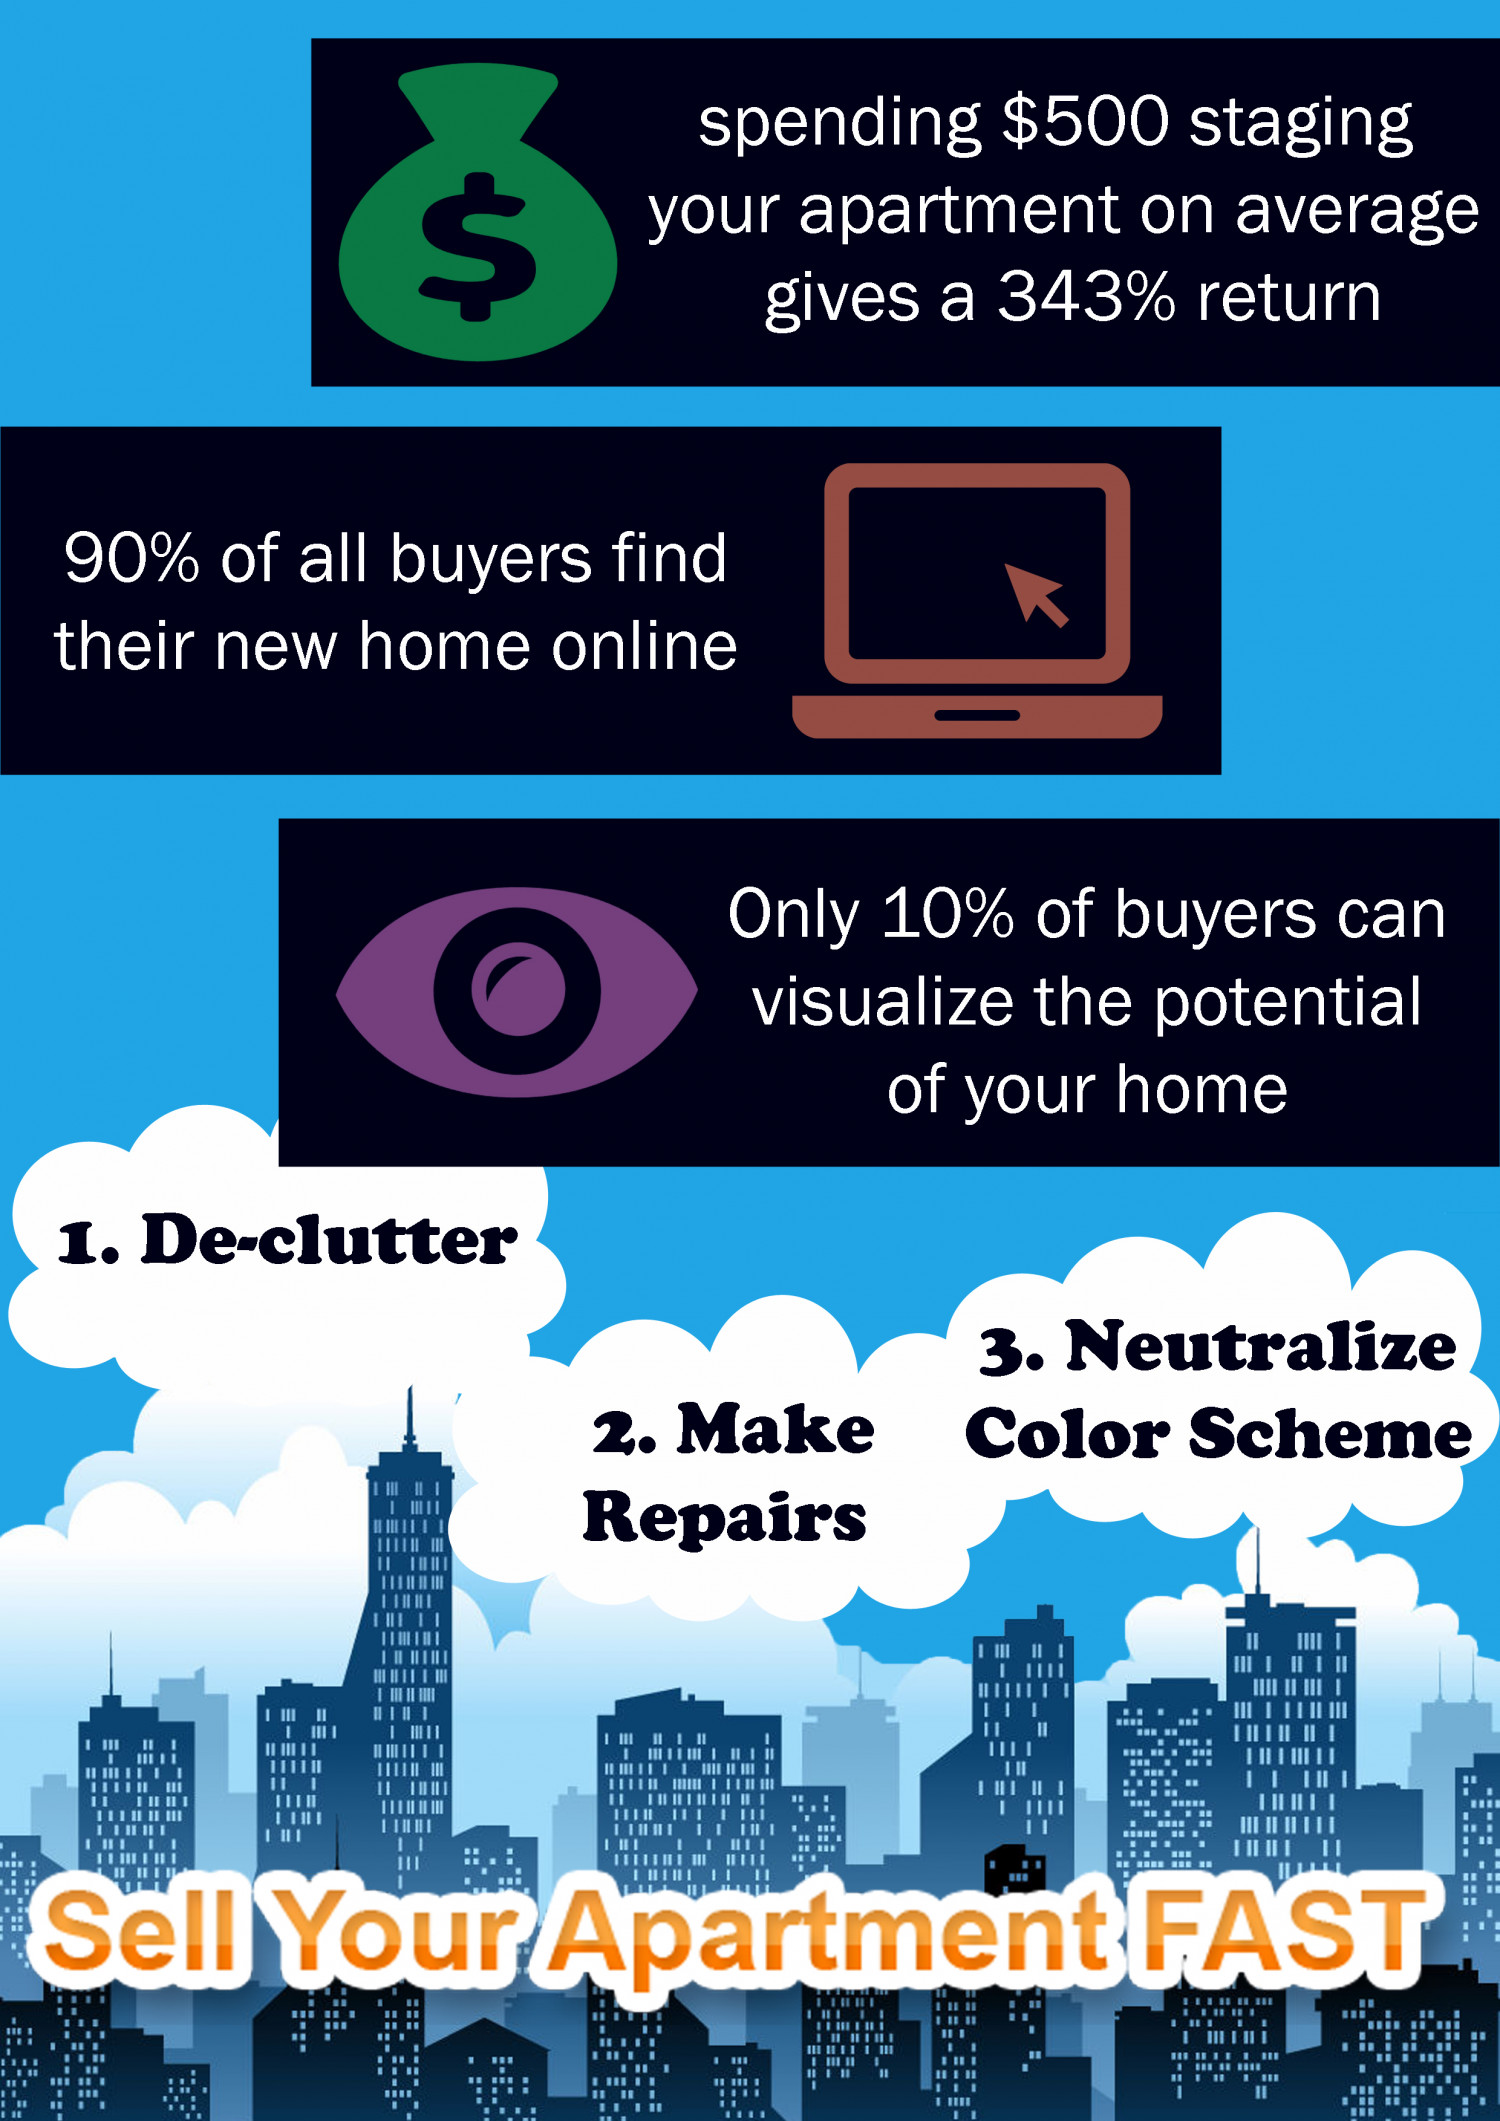 Sell Your Apartment FAST Infographic